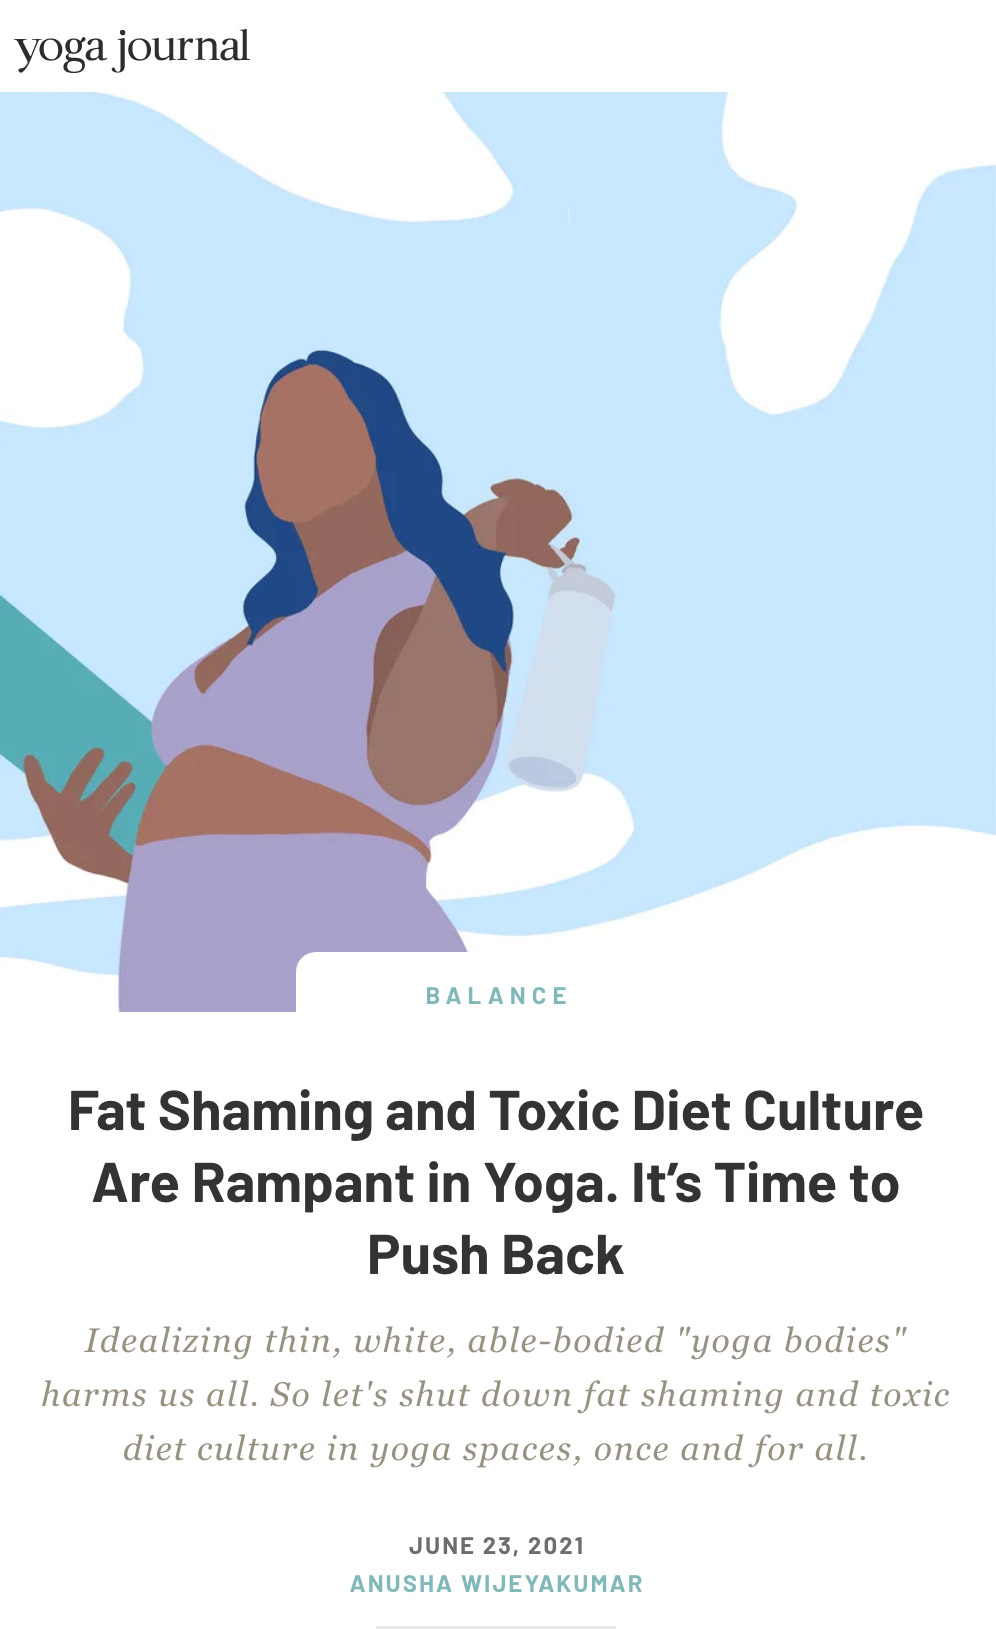 Fat Shaming and Toxic Diet Culture in Yoga